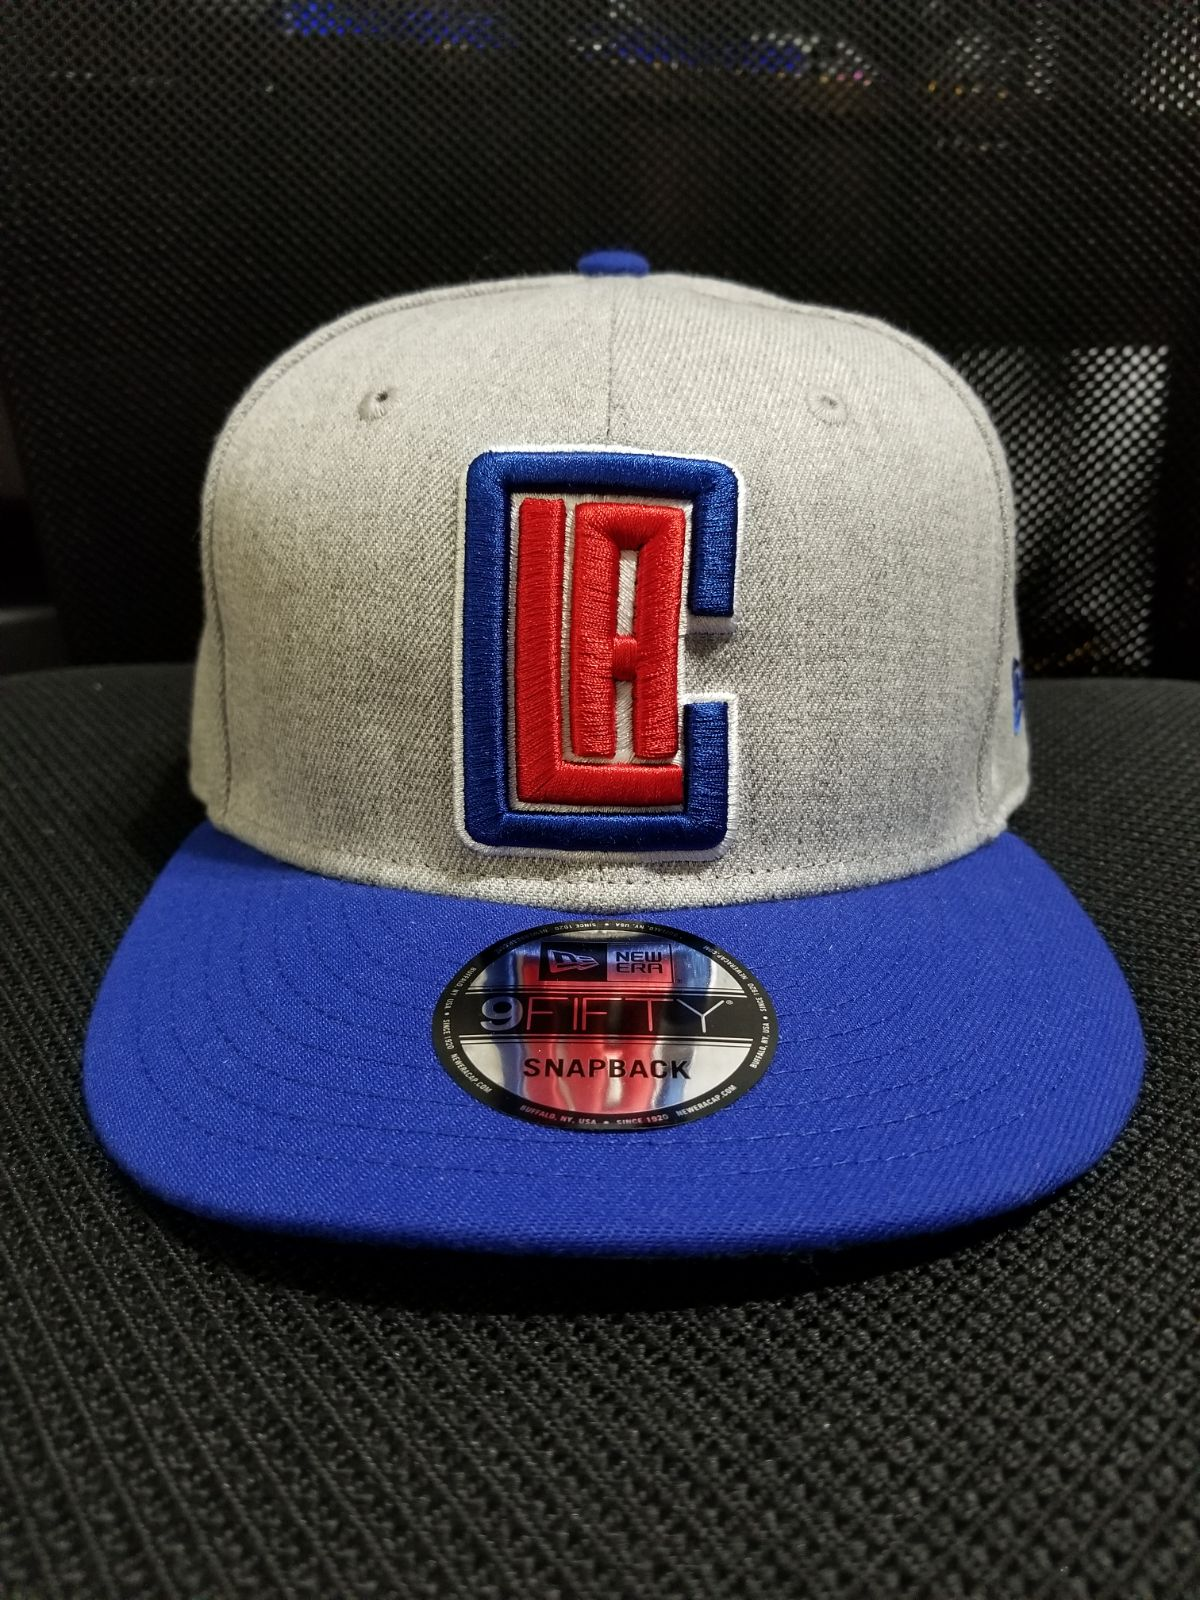 Los Angeles Clippers Snapback Hat